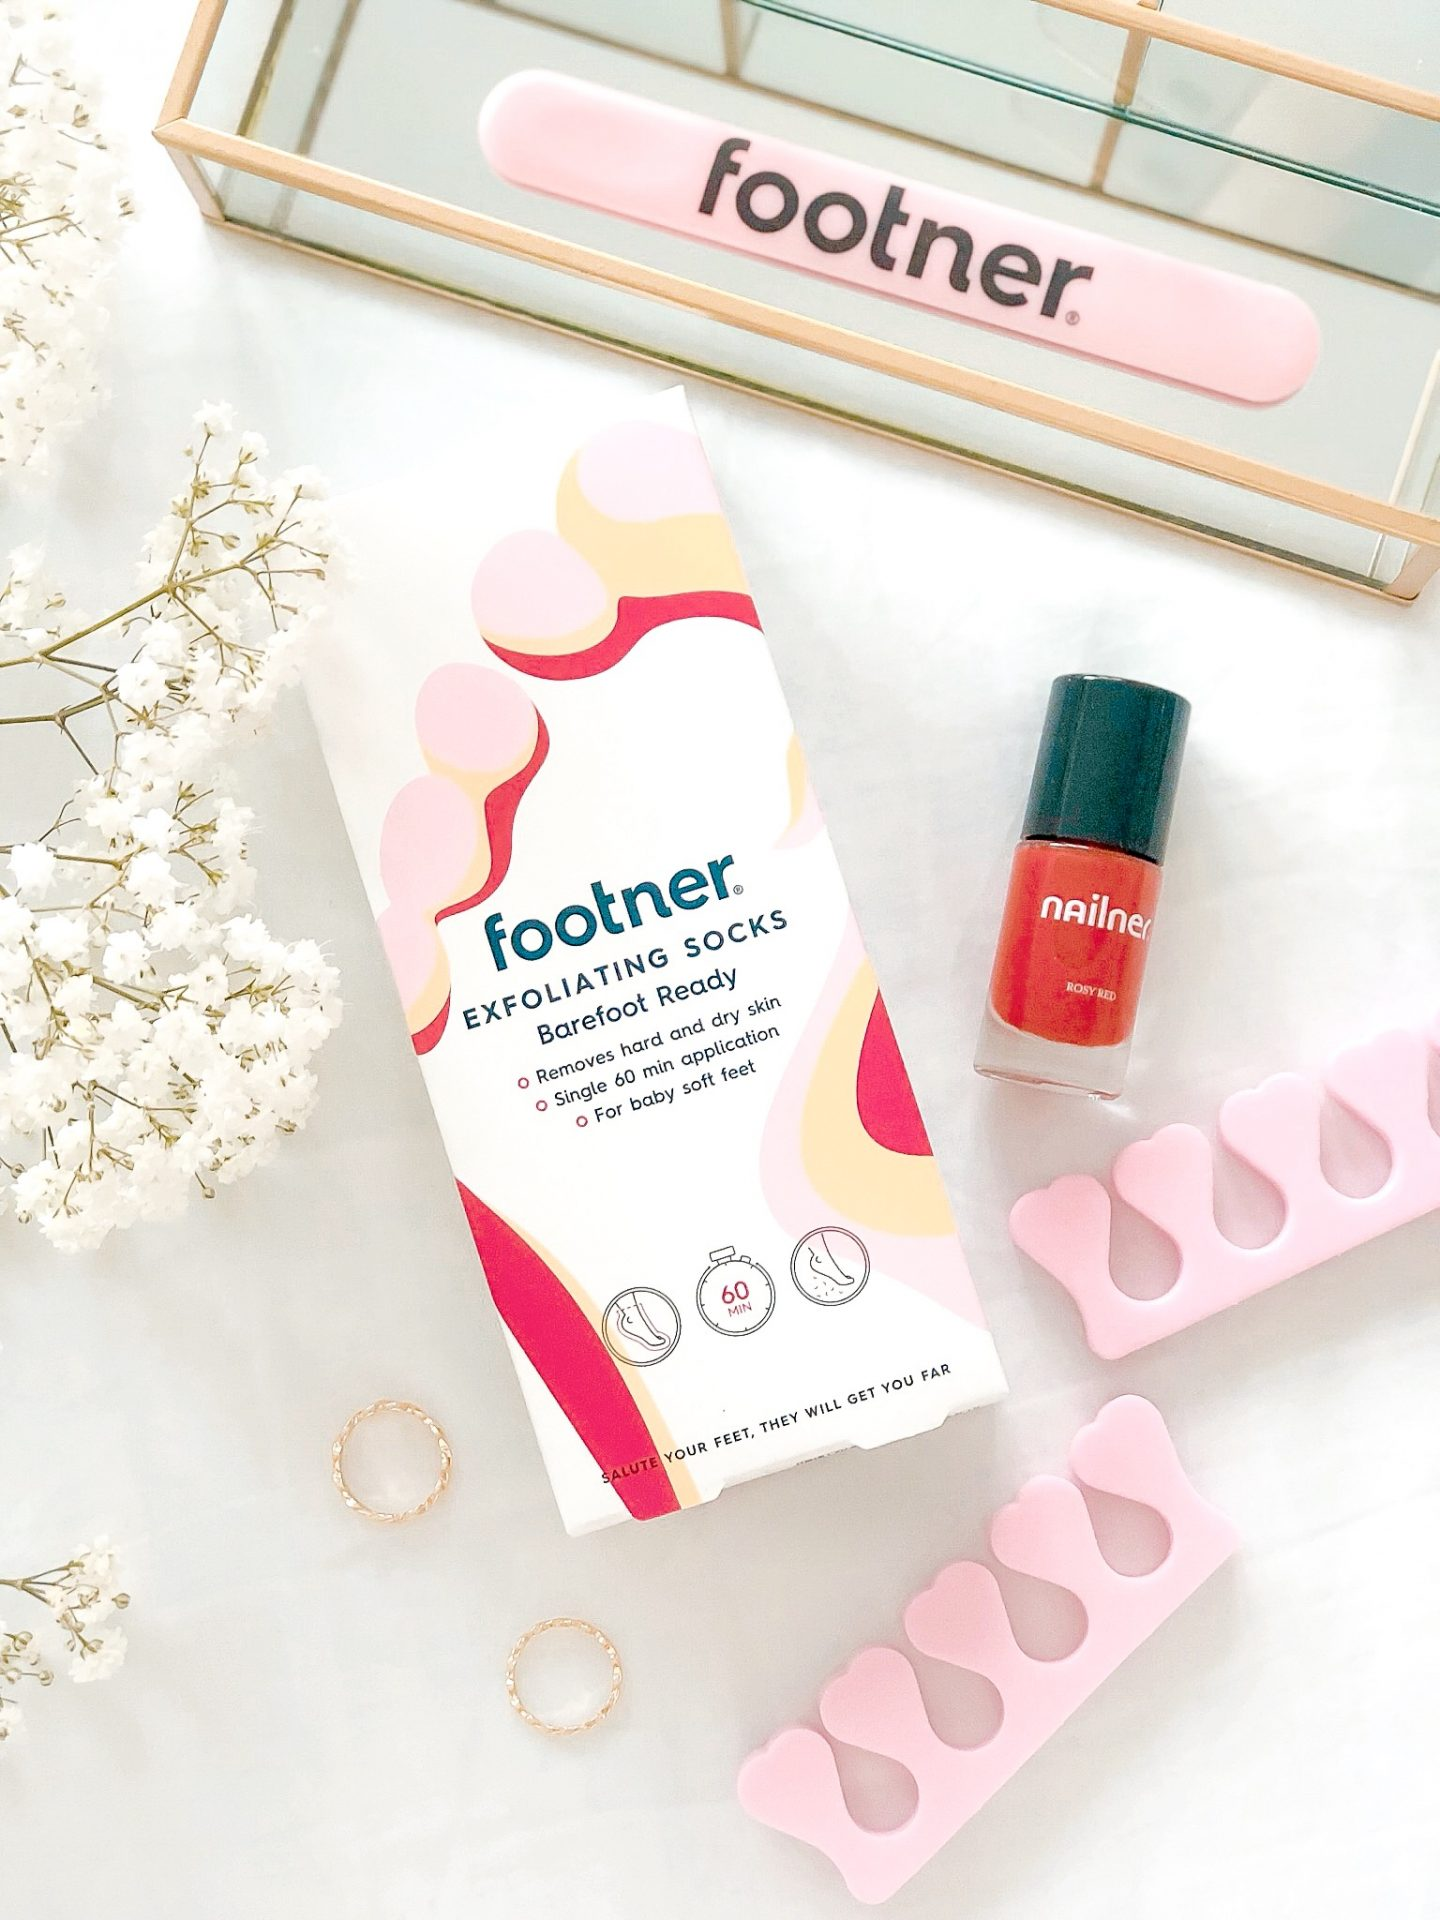 Footner Footcare Review